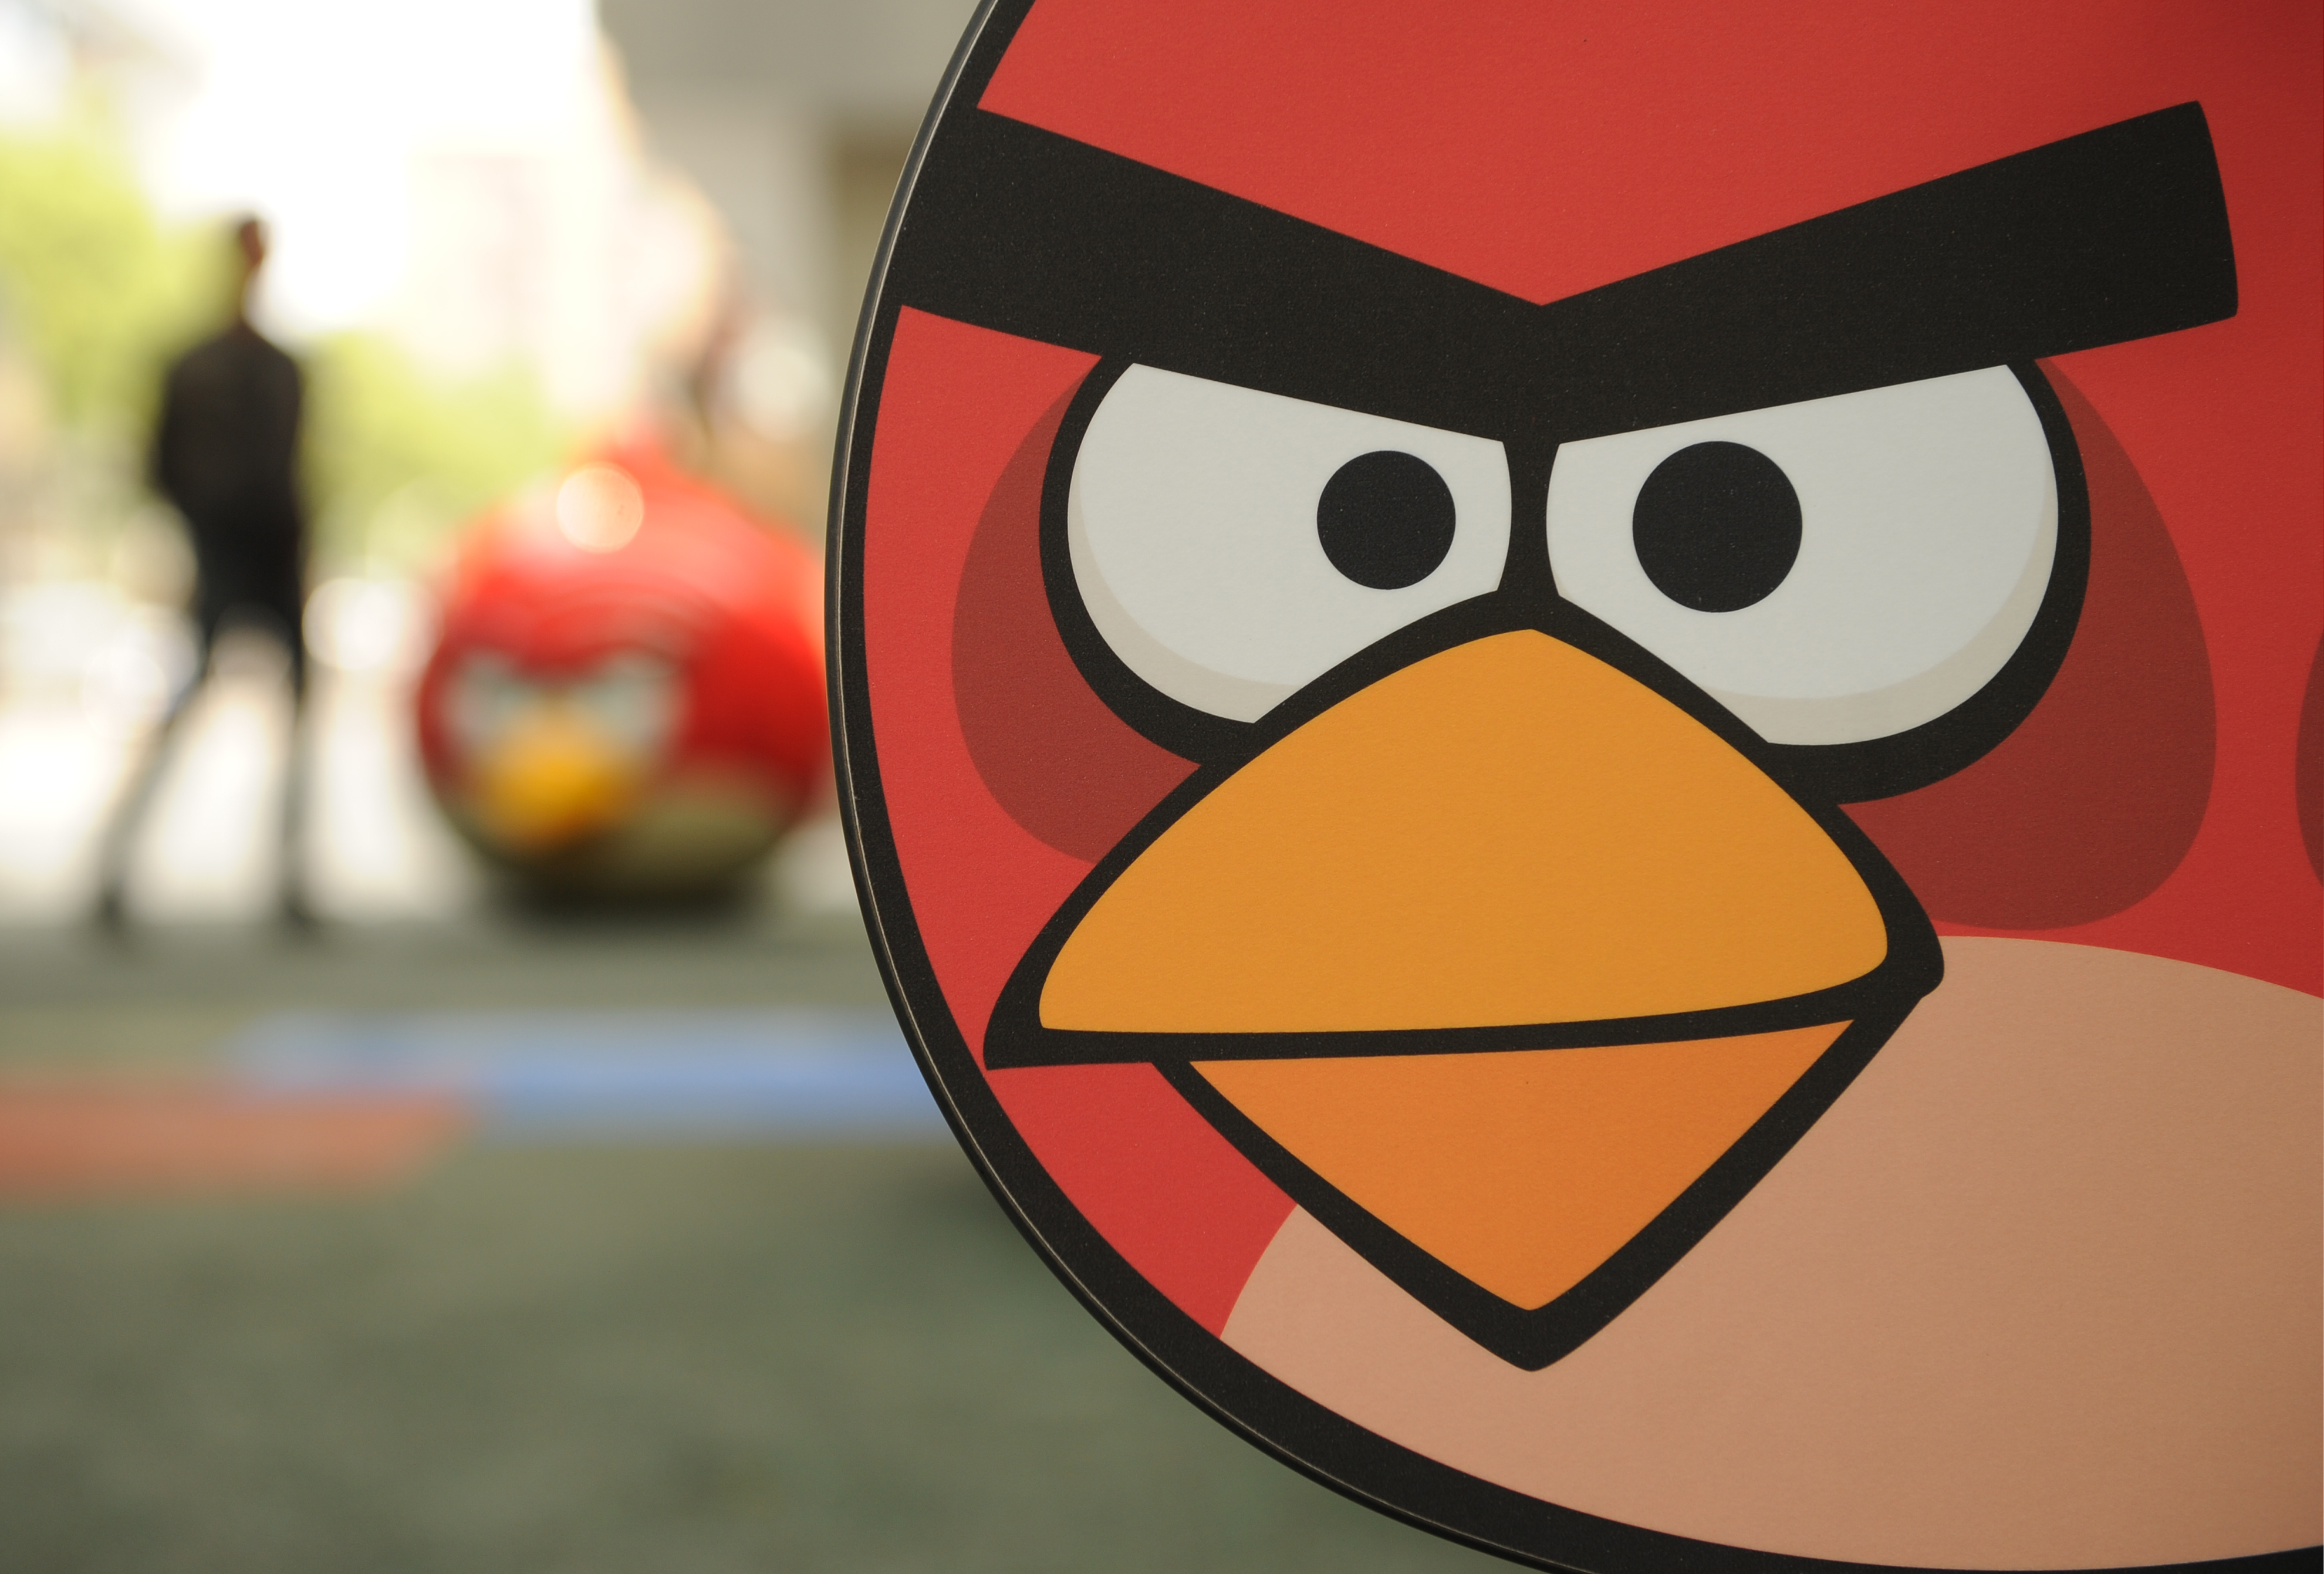 A visitor walks through Shanghai's first Angry Birds Activity Park at Tongji University in Shanghai on October 31, 2012.